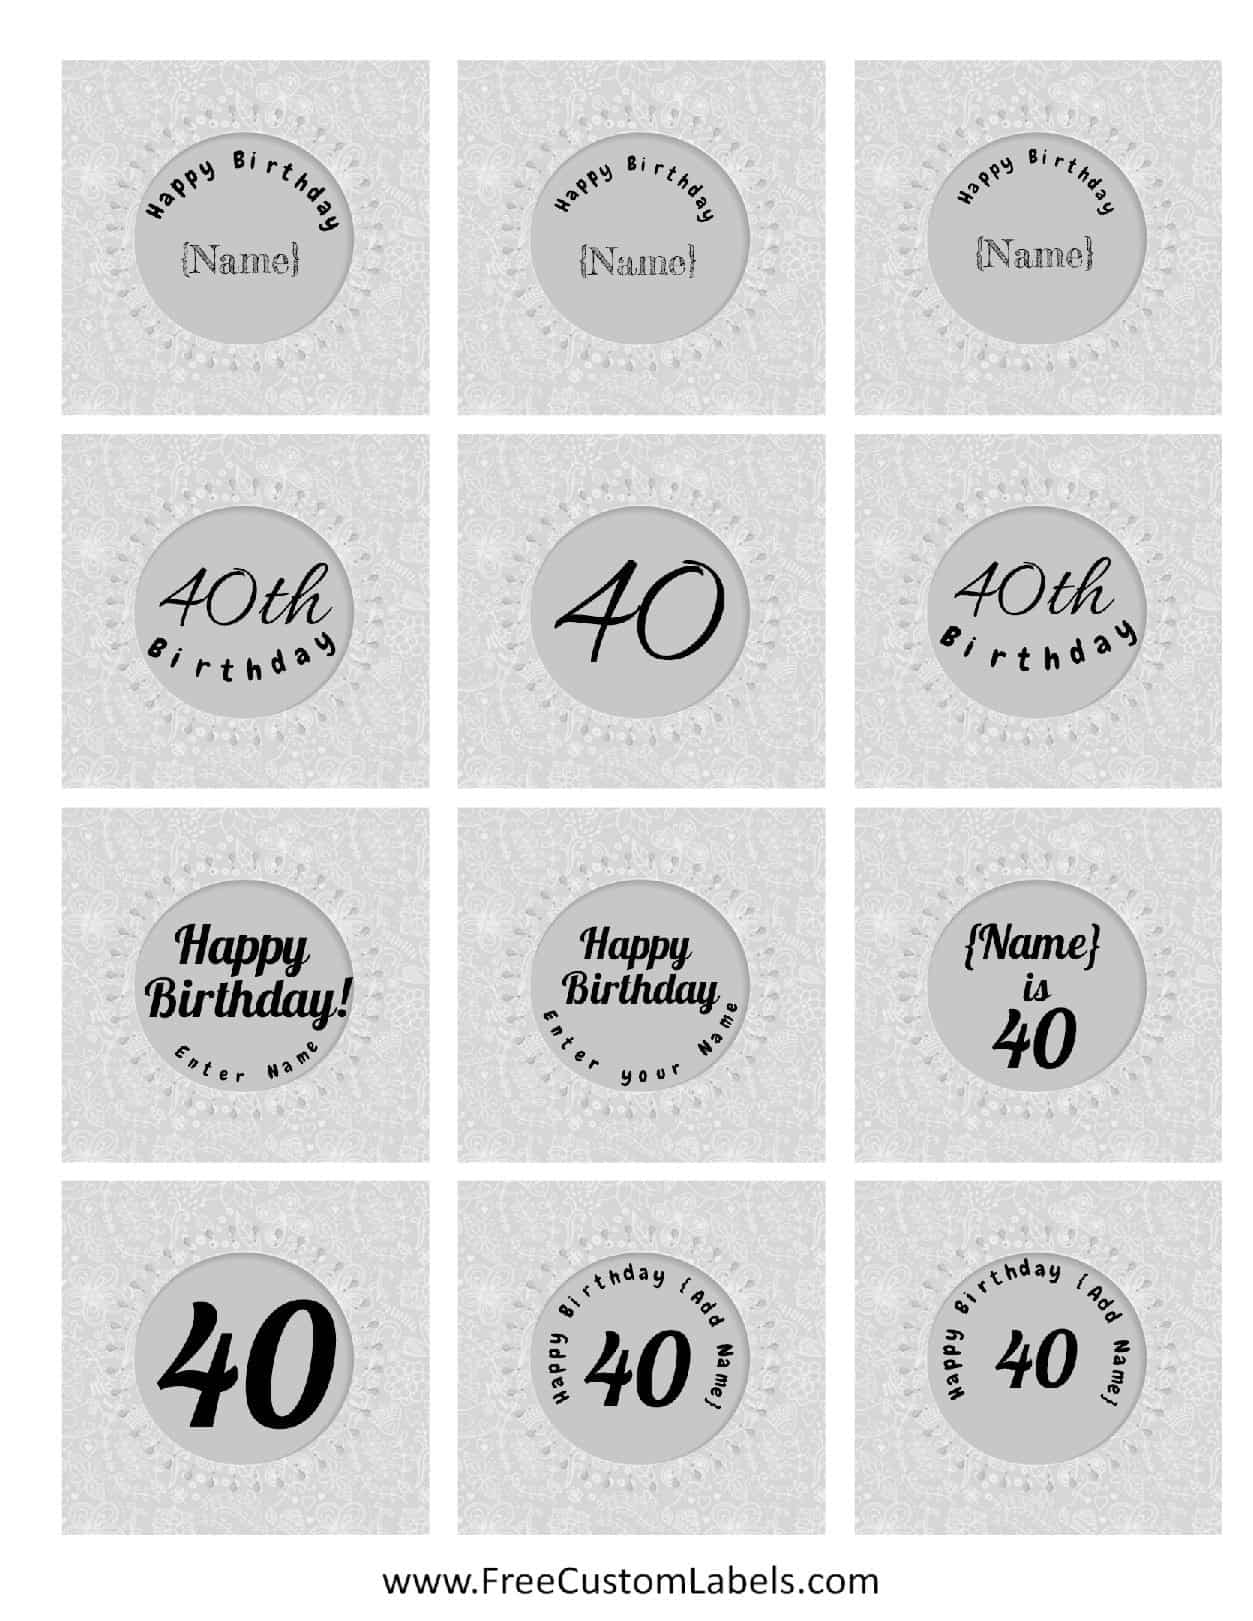 40th Birthday Cupcake Toppers - Free & Customizable